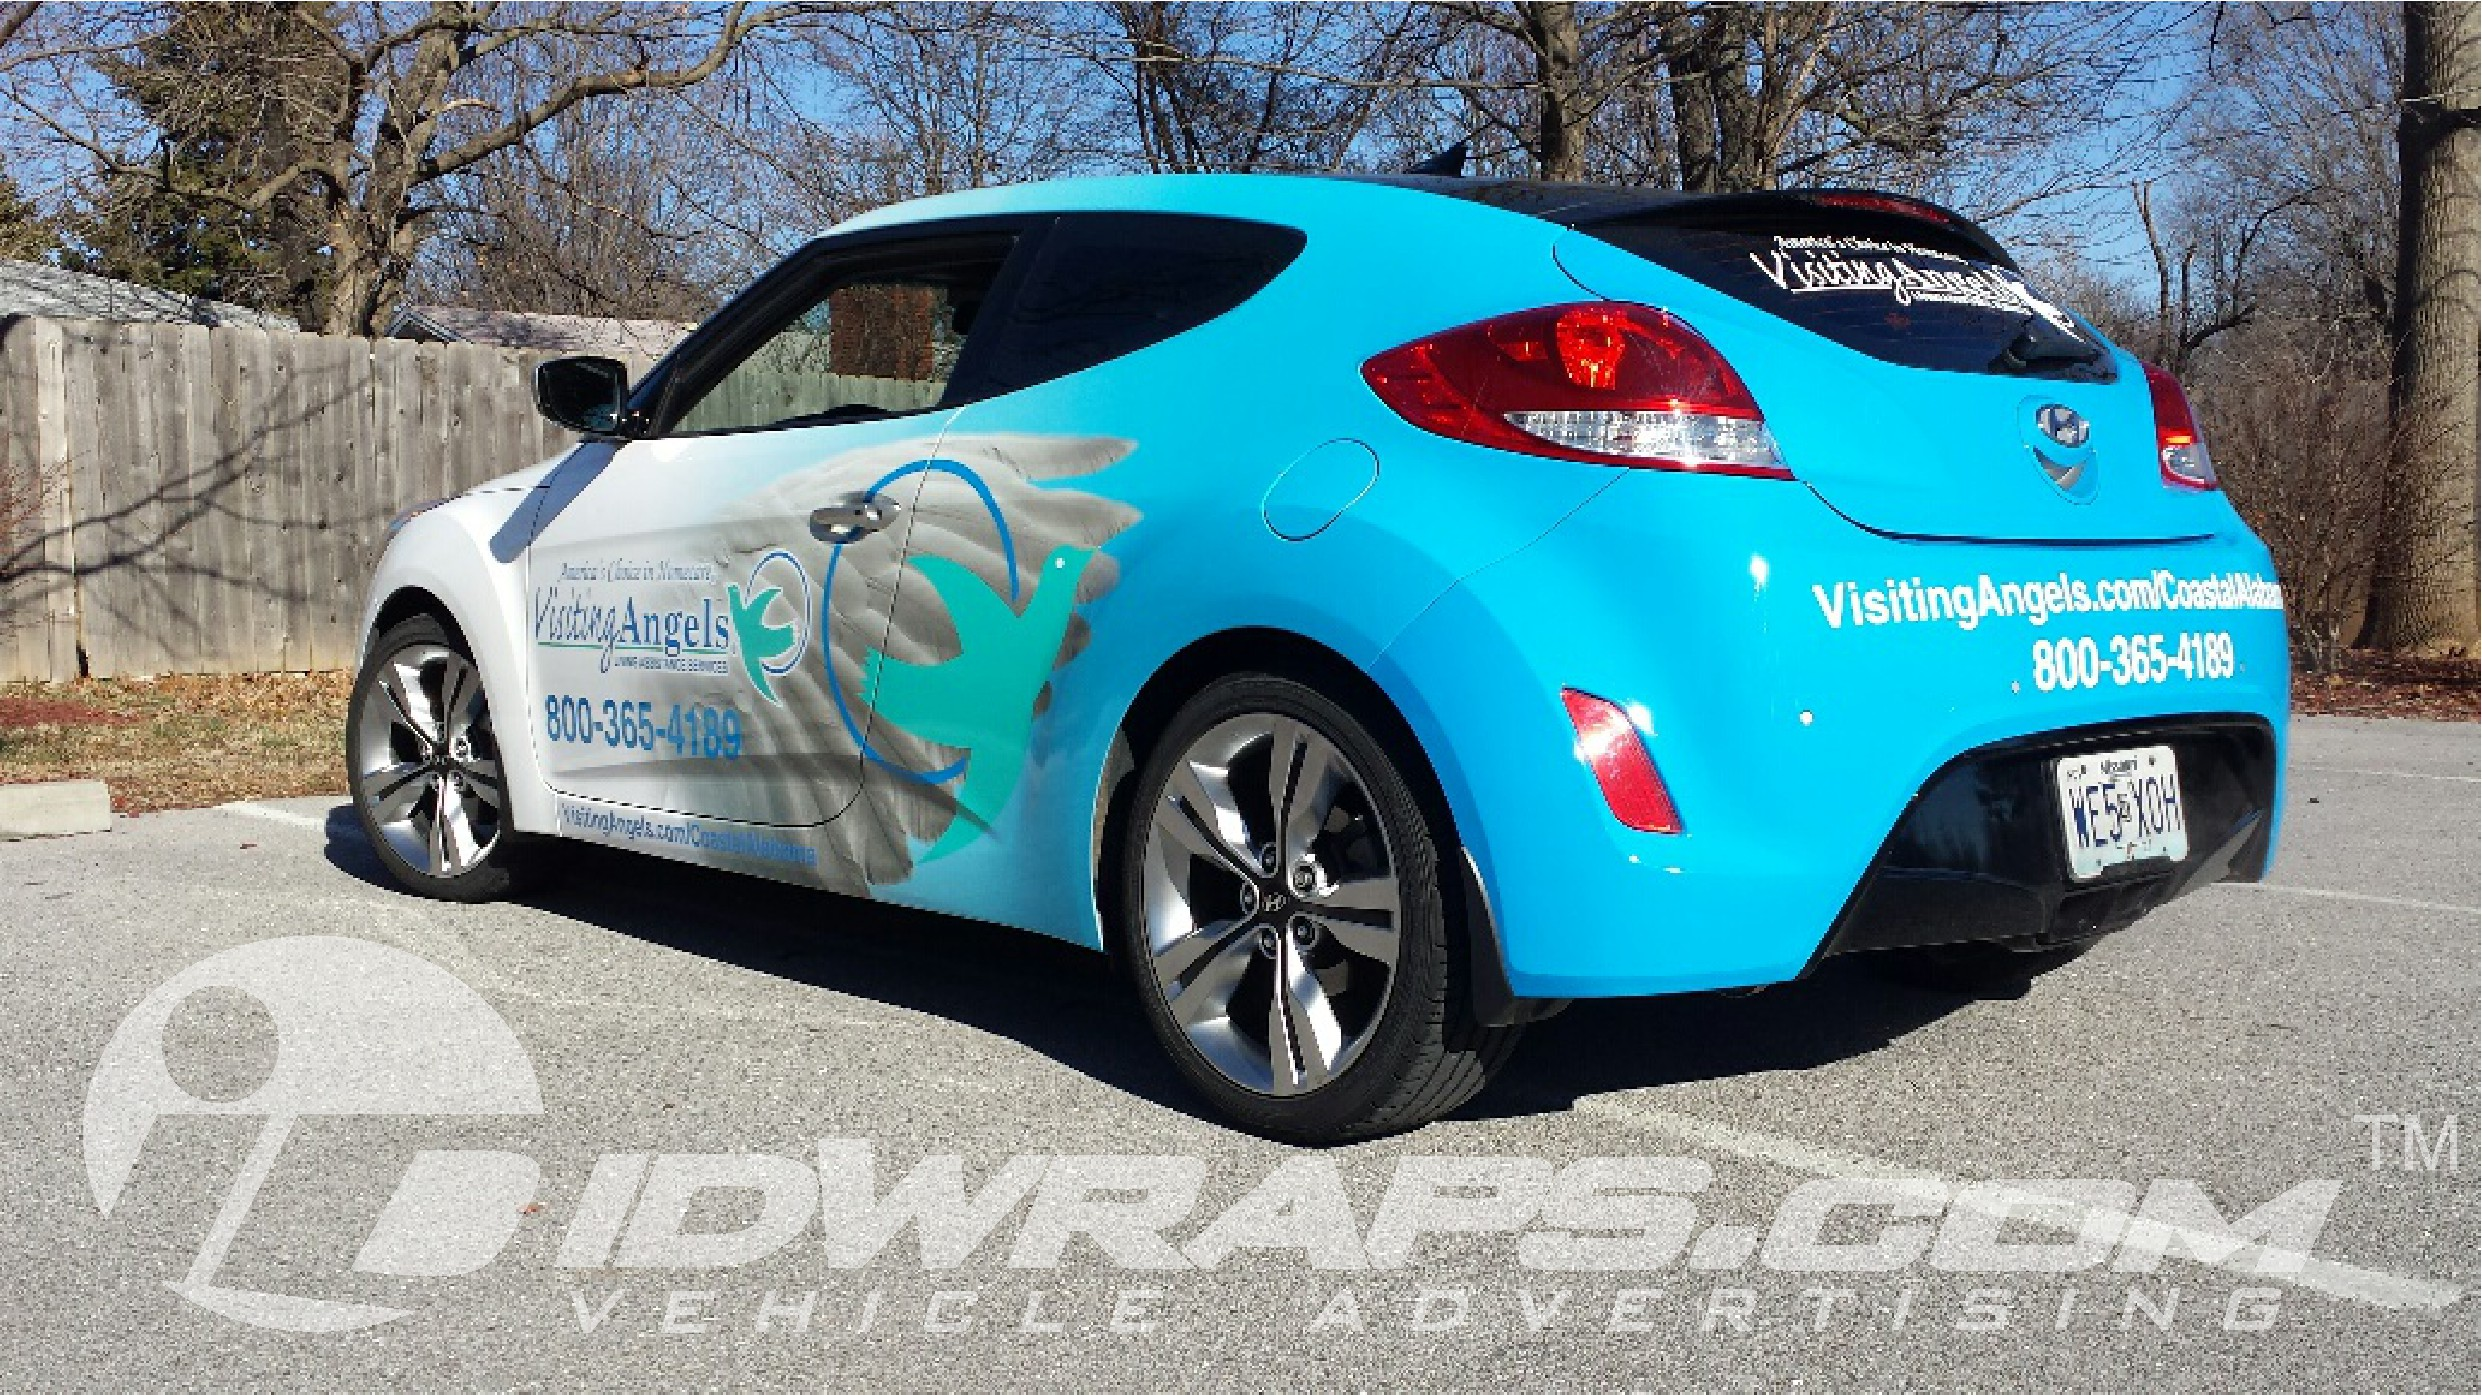 3m Certified Hyundai Veloster Wrap Visiting Angels Joplin